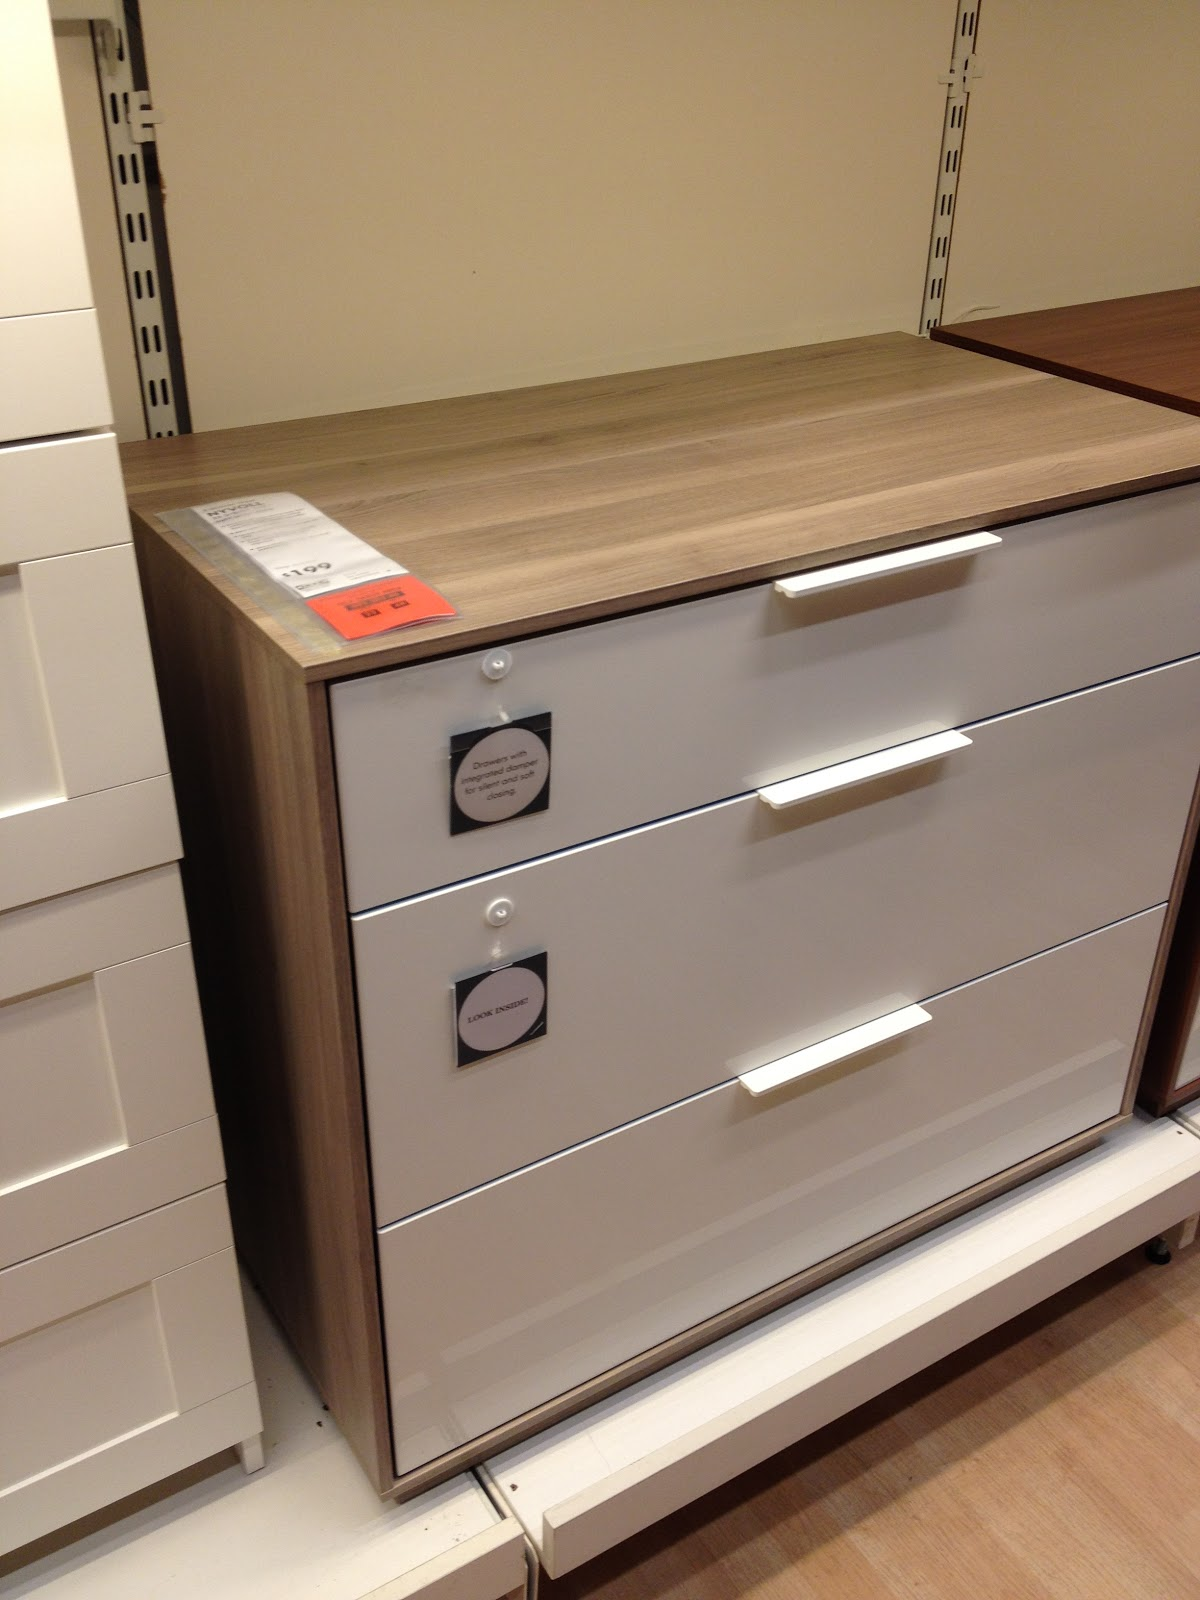 bdg style cheap stylish rad my new nightstands. Black Bedroom Furniture Sets. Home Design Ideas